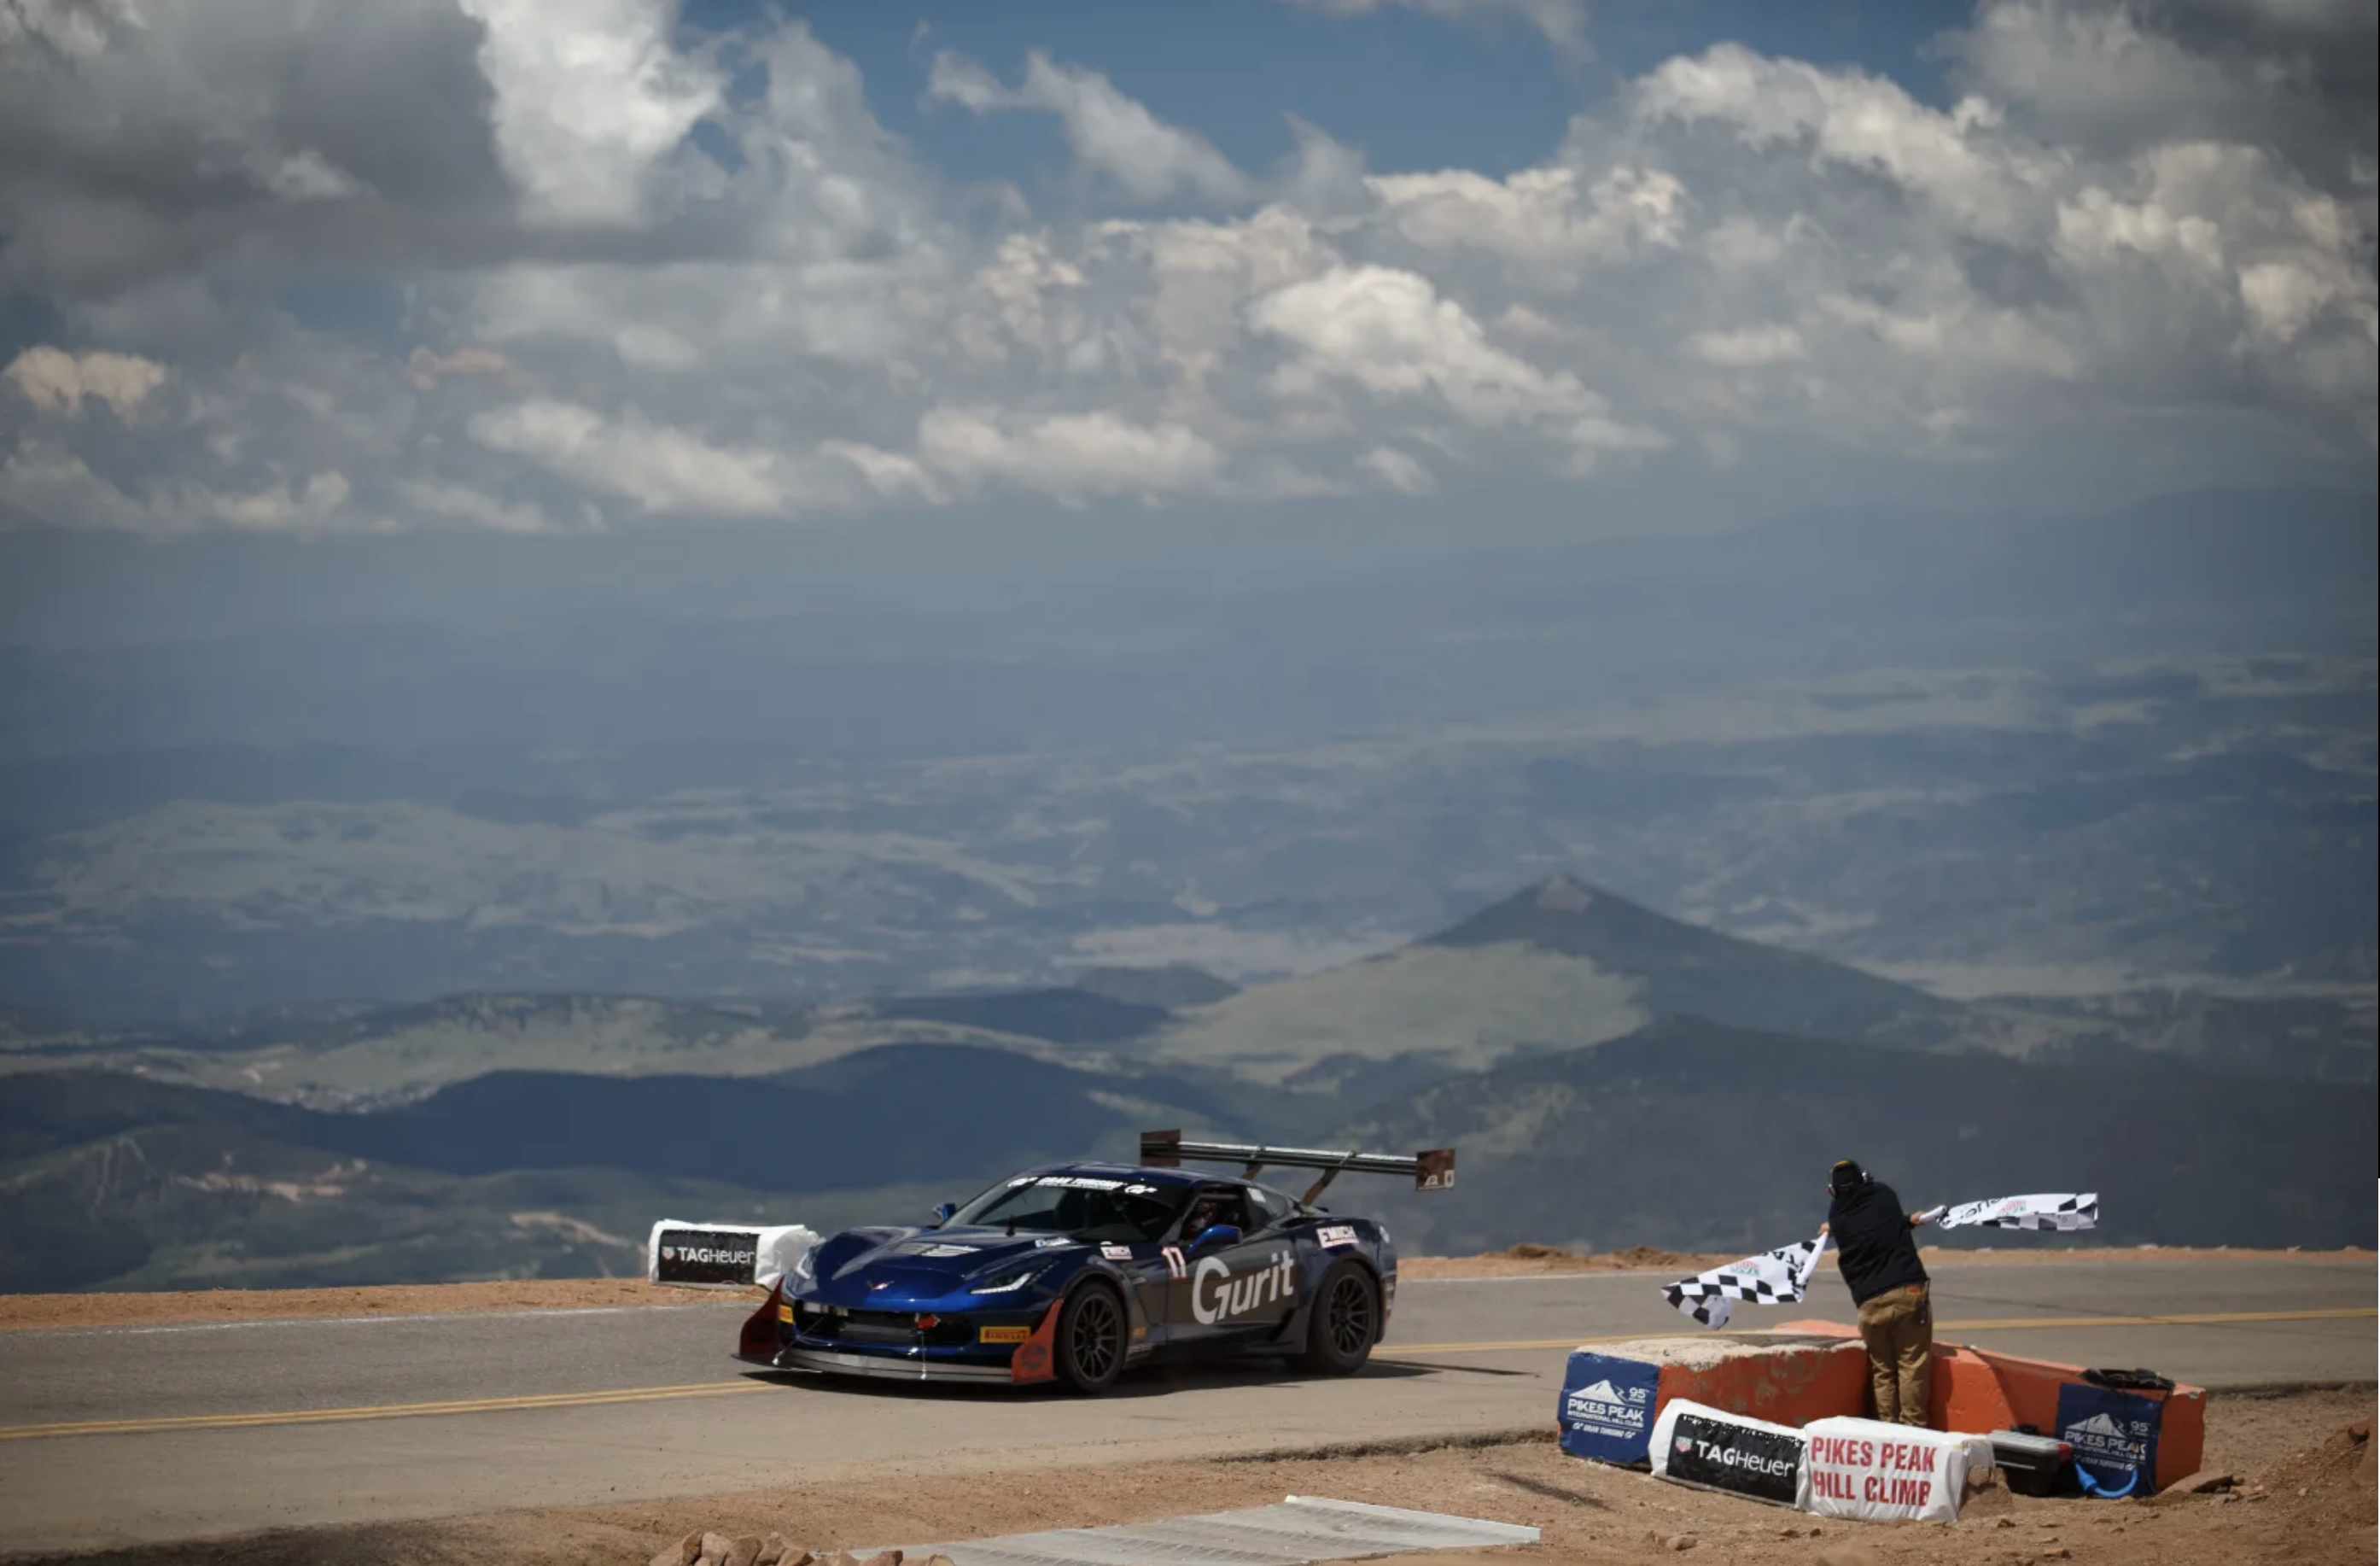 PIKES PEAK INTERNATIONAL HILL CLIMB: THE RACE TO THE CLOUDS !